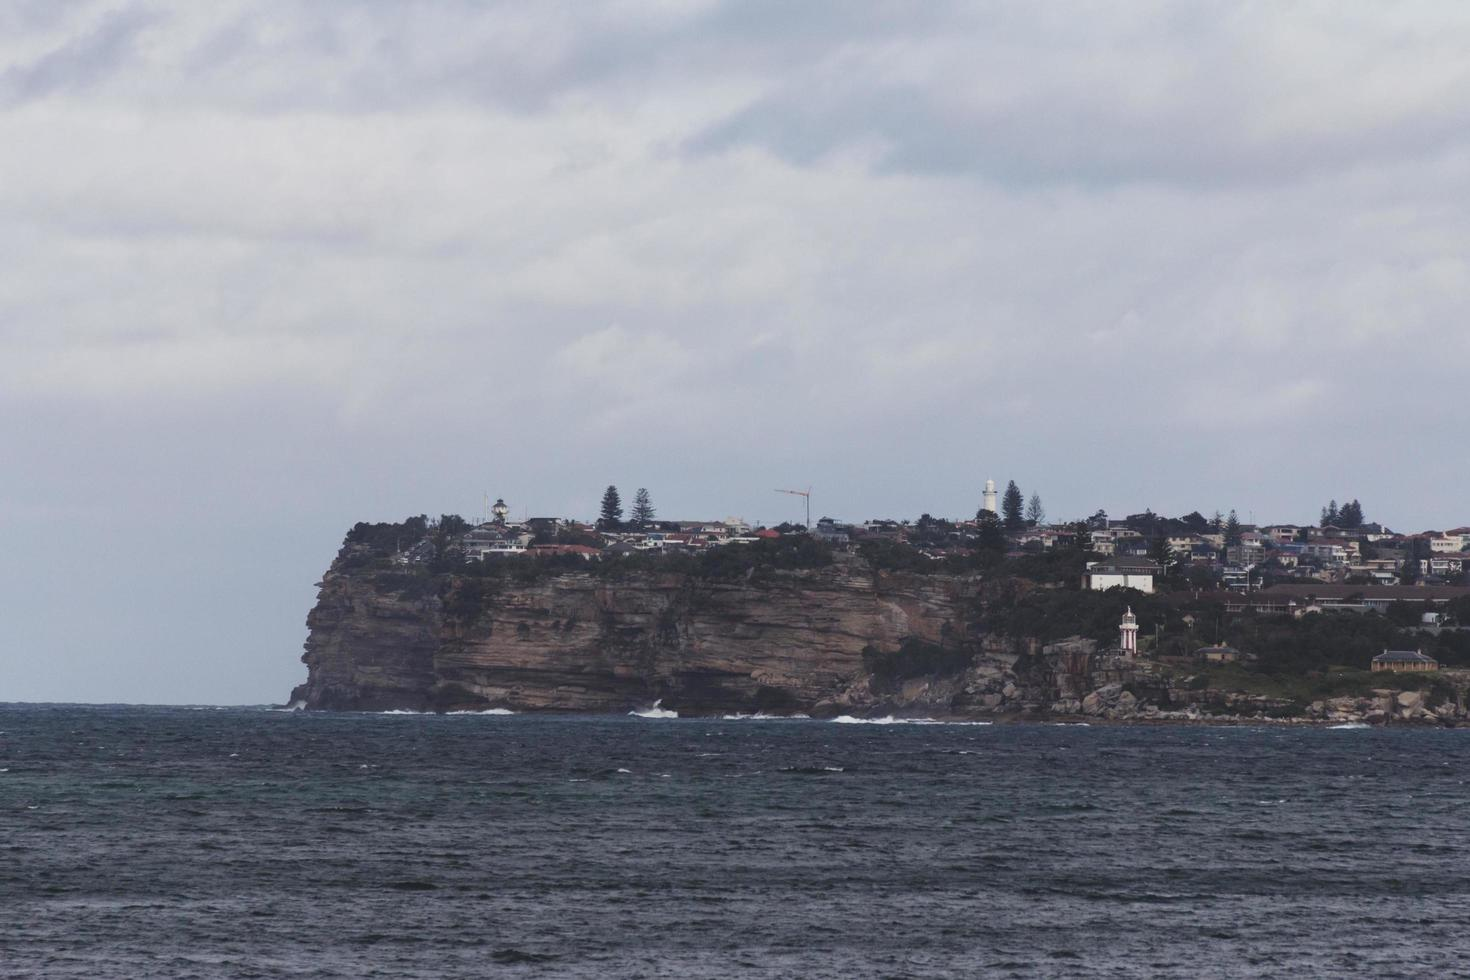 Town on a cliff near the sea photo